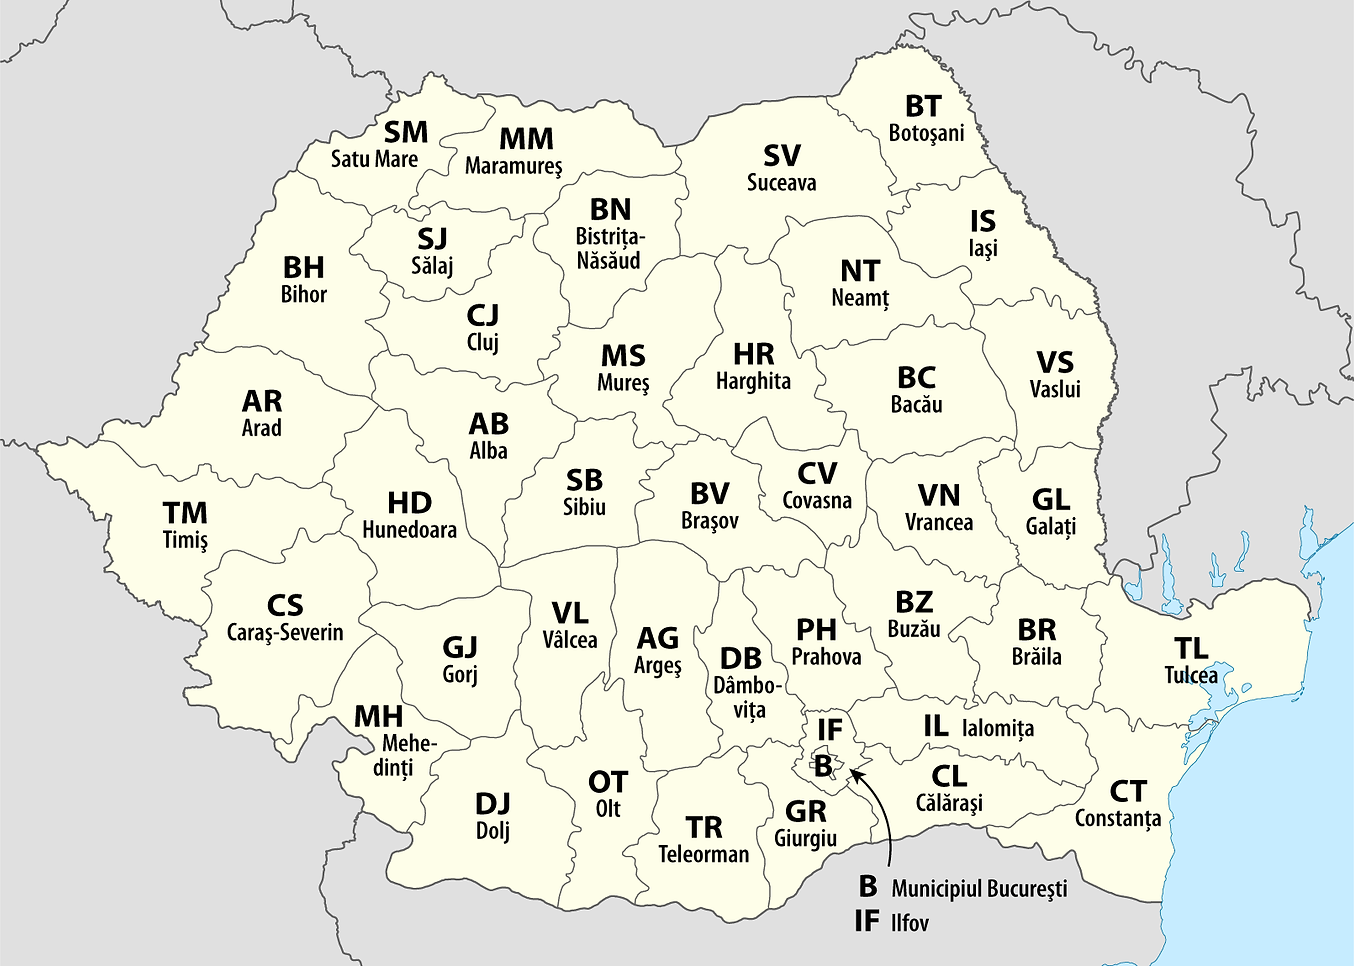 Romanian_license_plate_codes.png